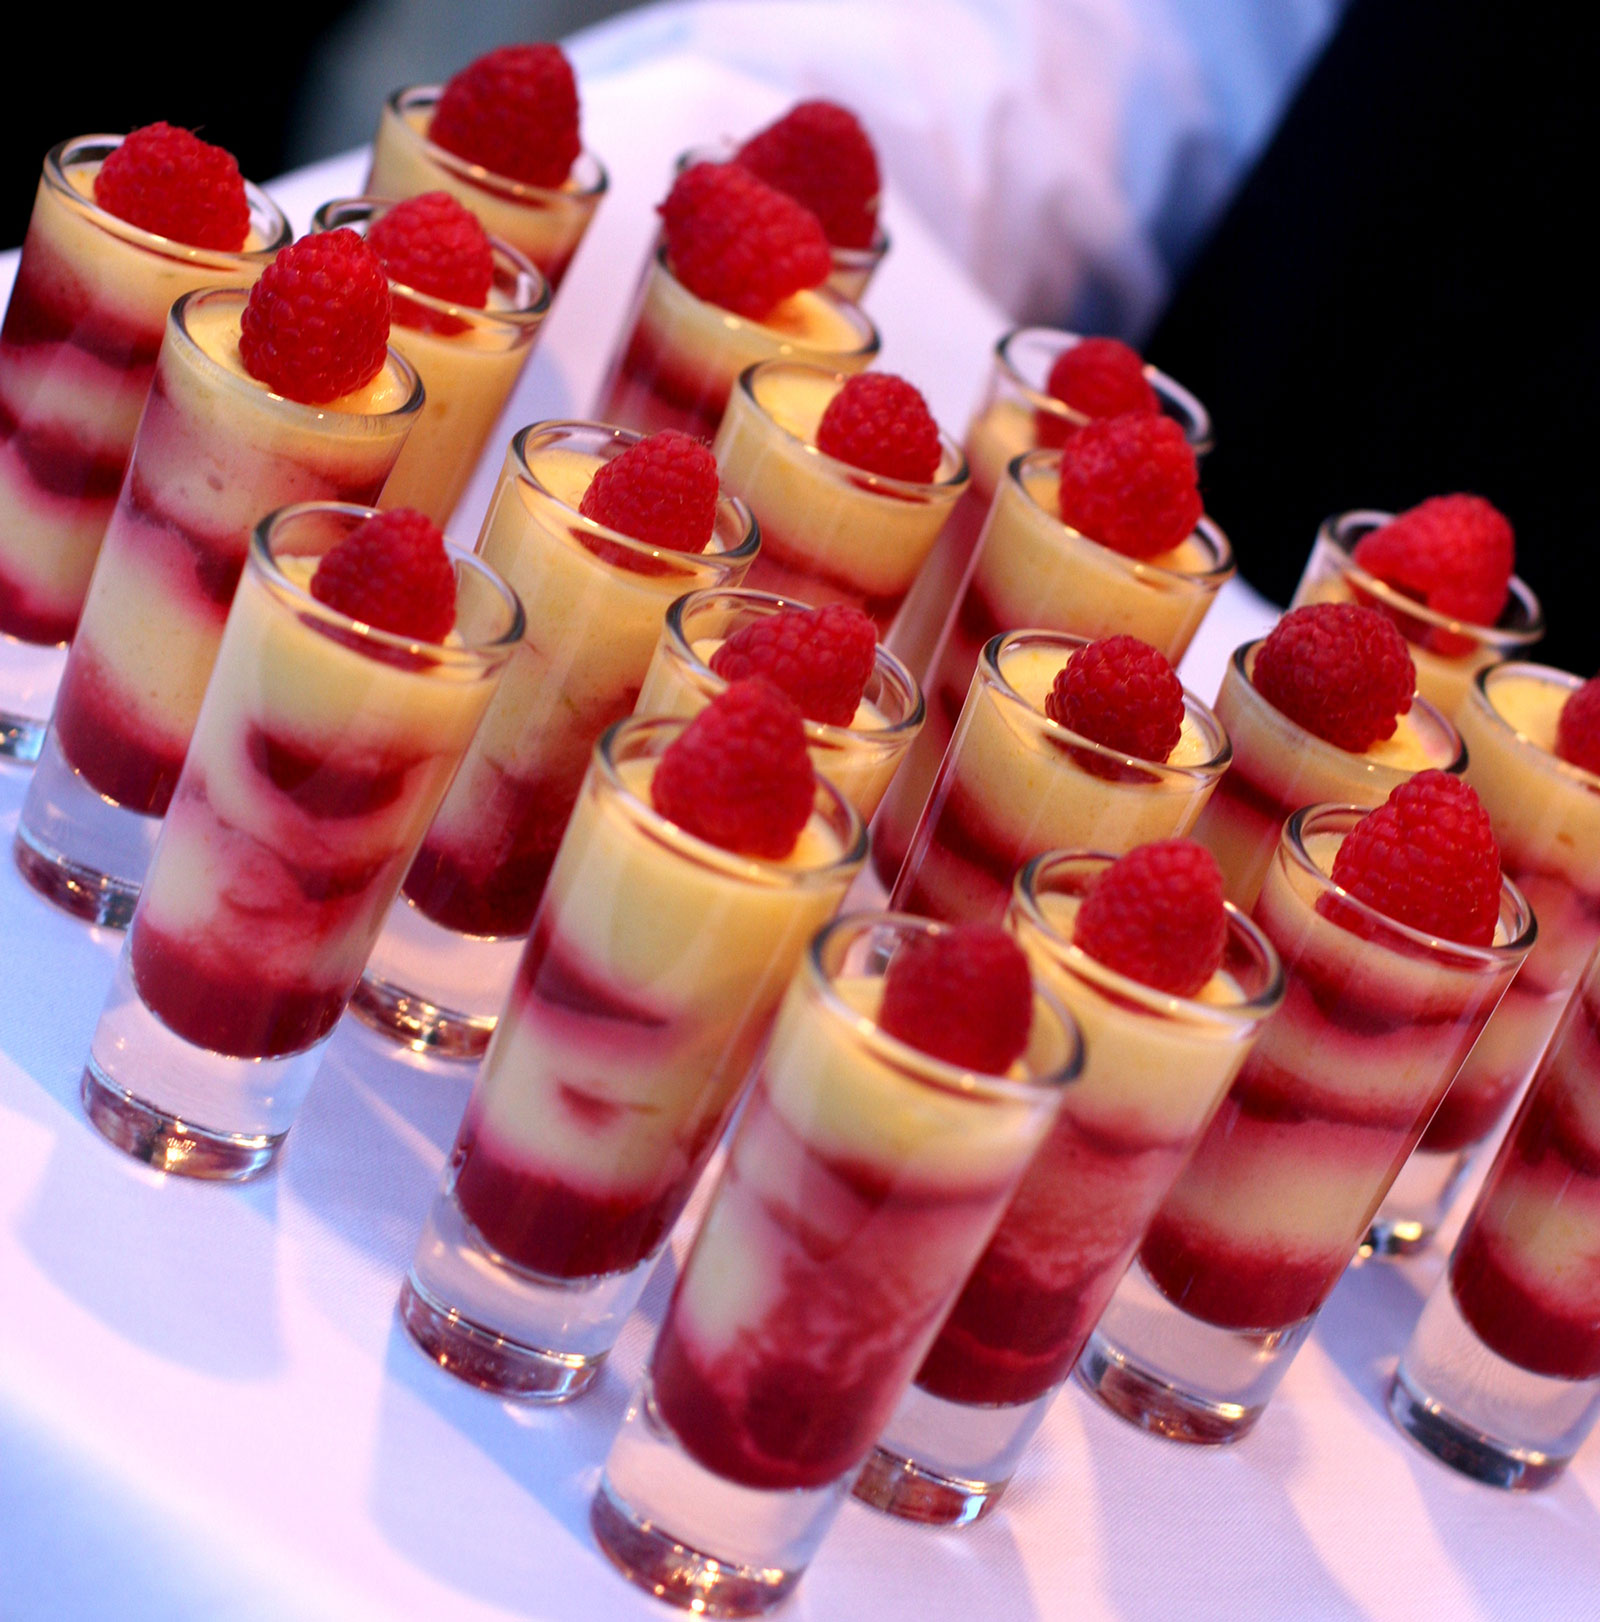 Multiple raspberry and cream desserts in glasses with raspberry on top